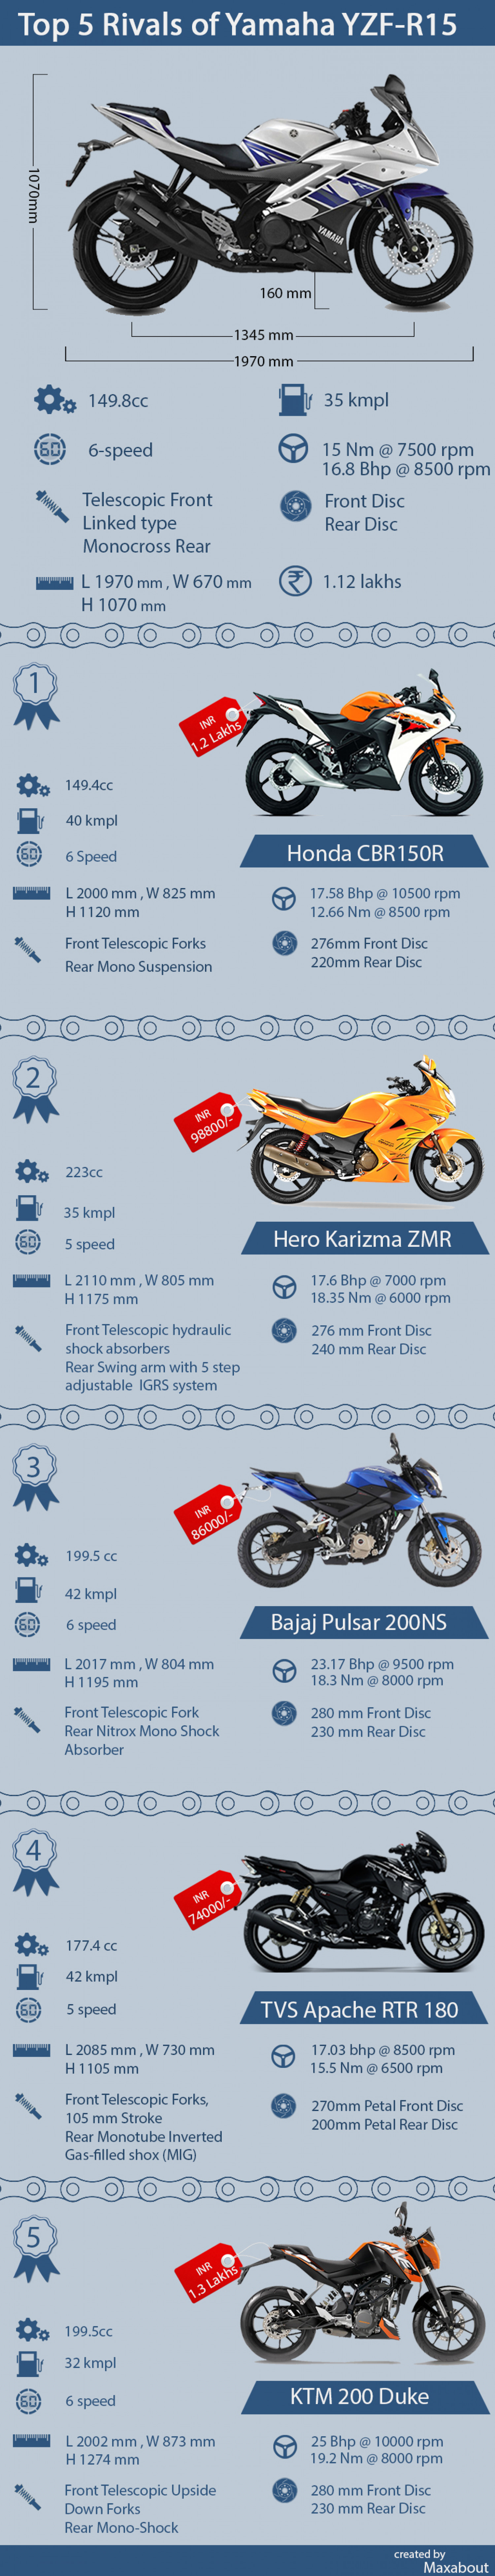 Top 5 Rivals of Yamaha YZF-R15 Infographic